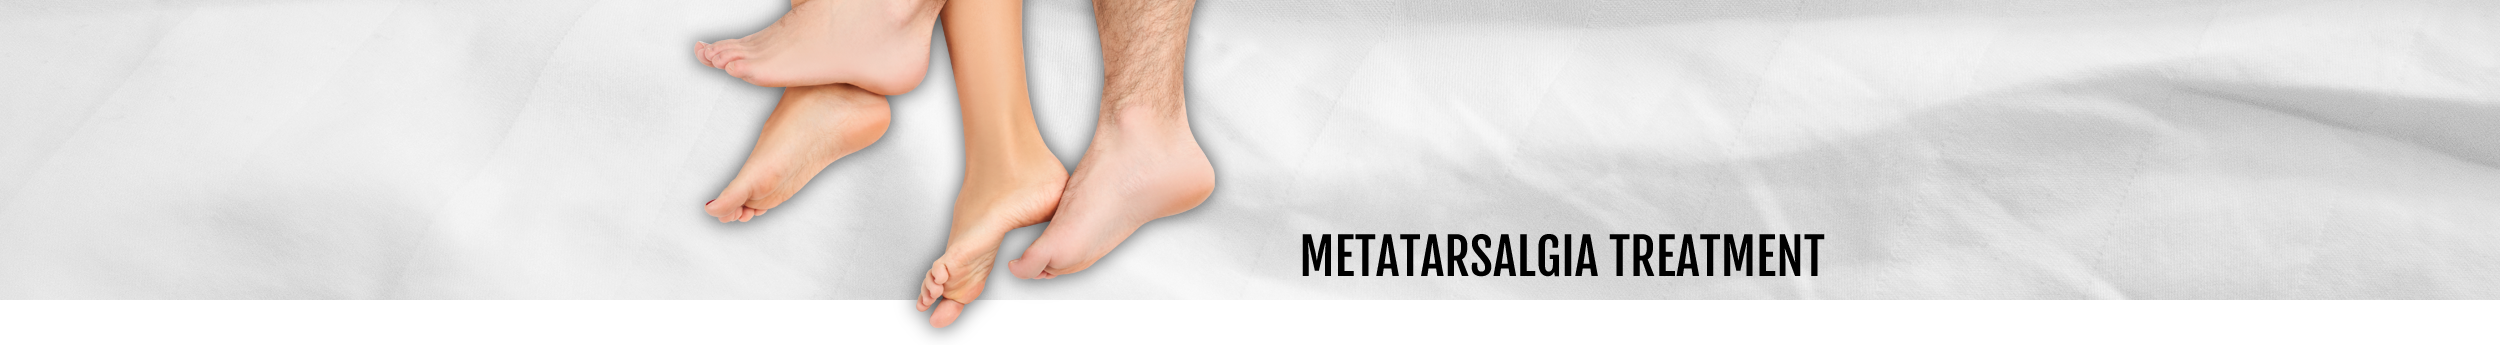 Metatarsalgia treatment header for the Walk IN Foot Clinic in central London